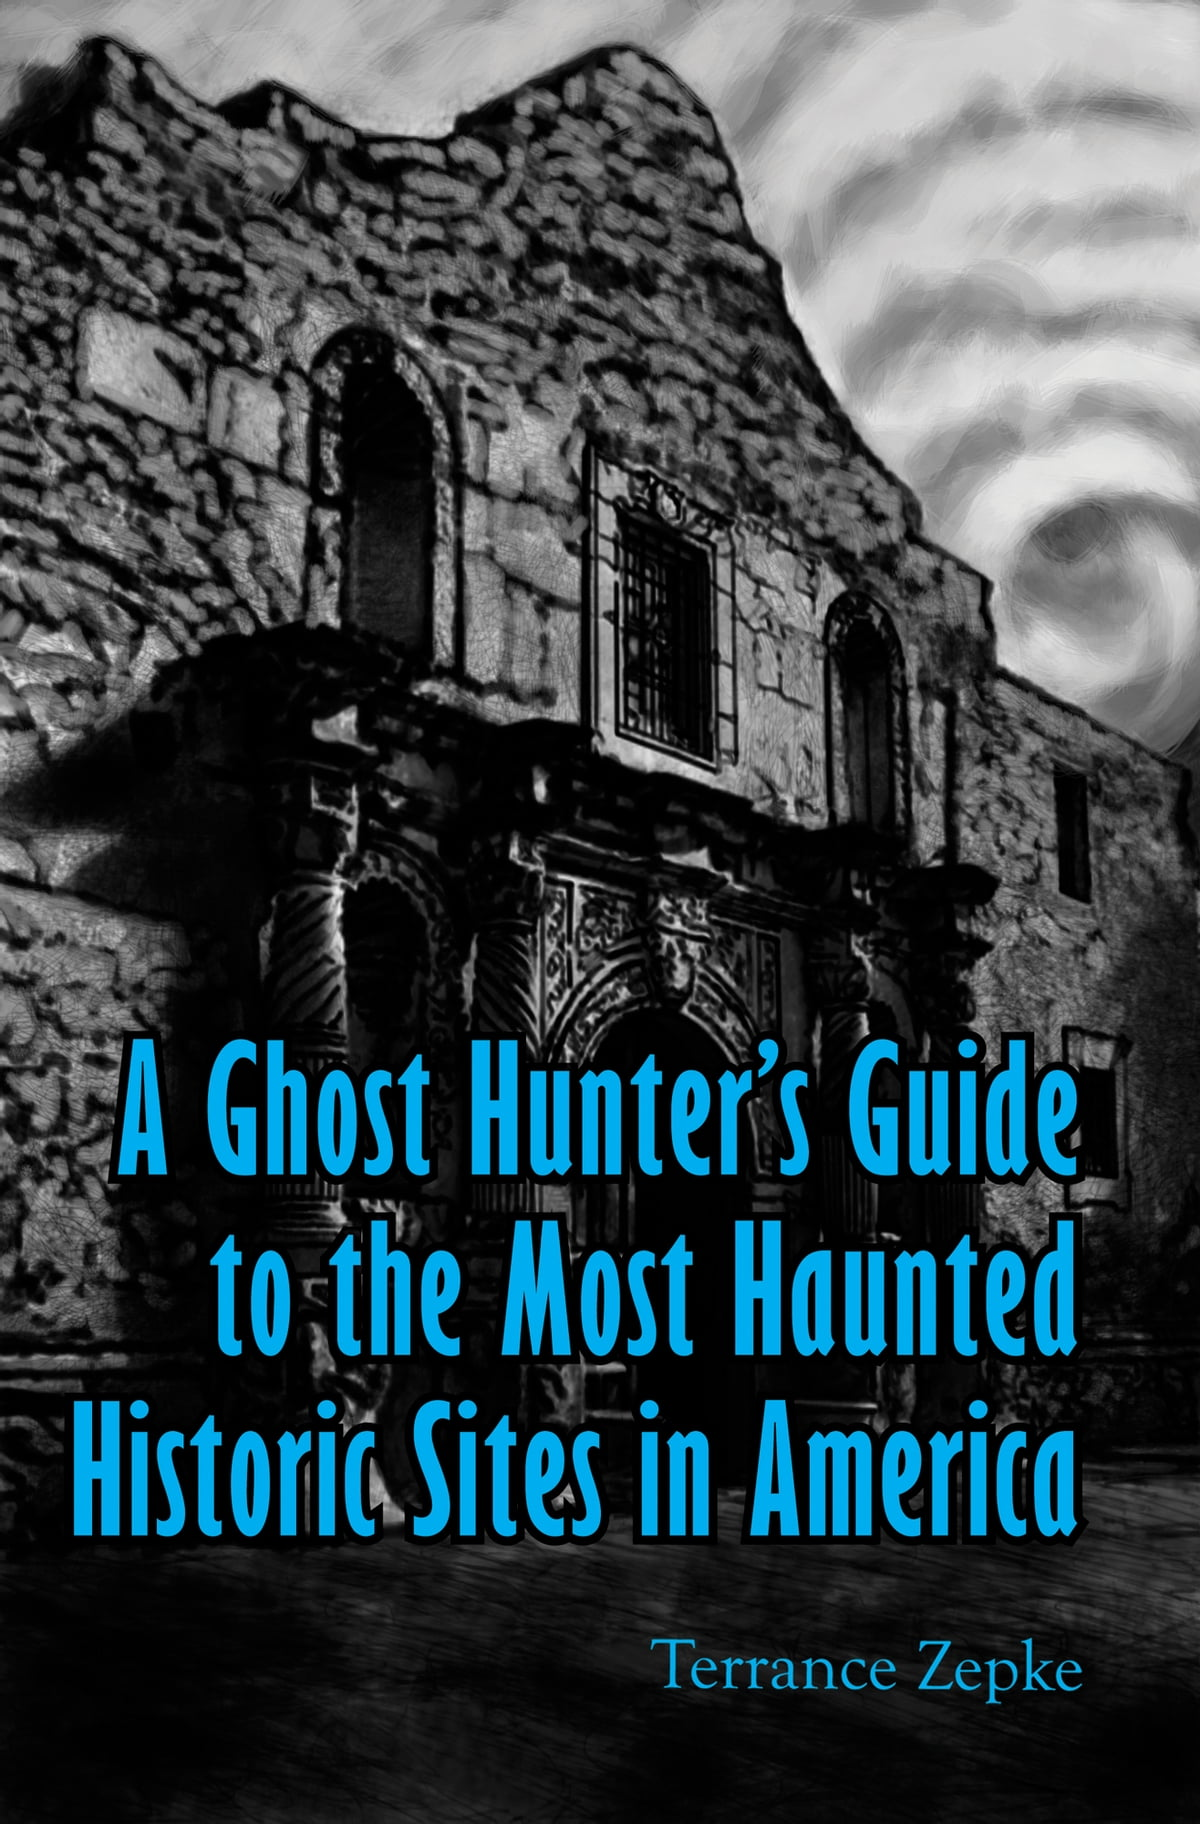 A Ghost Hunter's Guide to the Most Haunted Historic Sites in America eBook  by Terrance Zepke - 1230001377538 | Rakuten Kobo